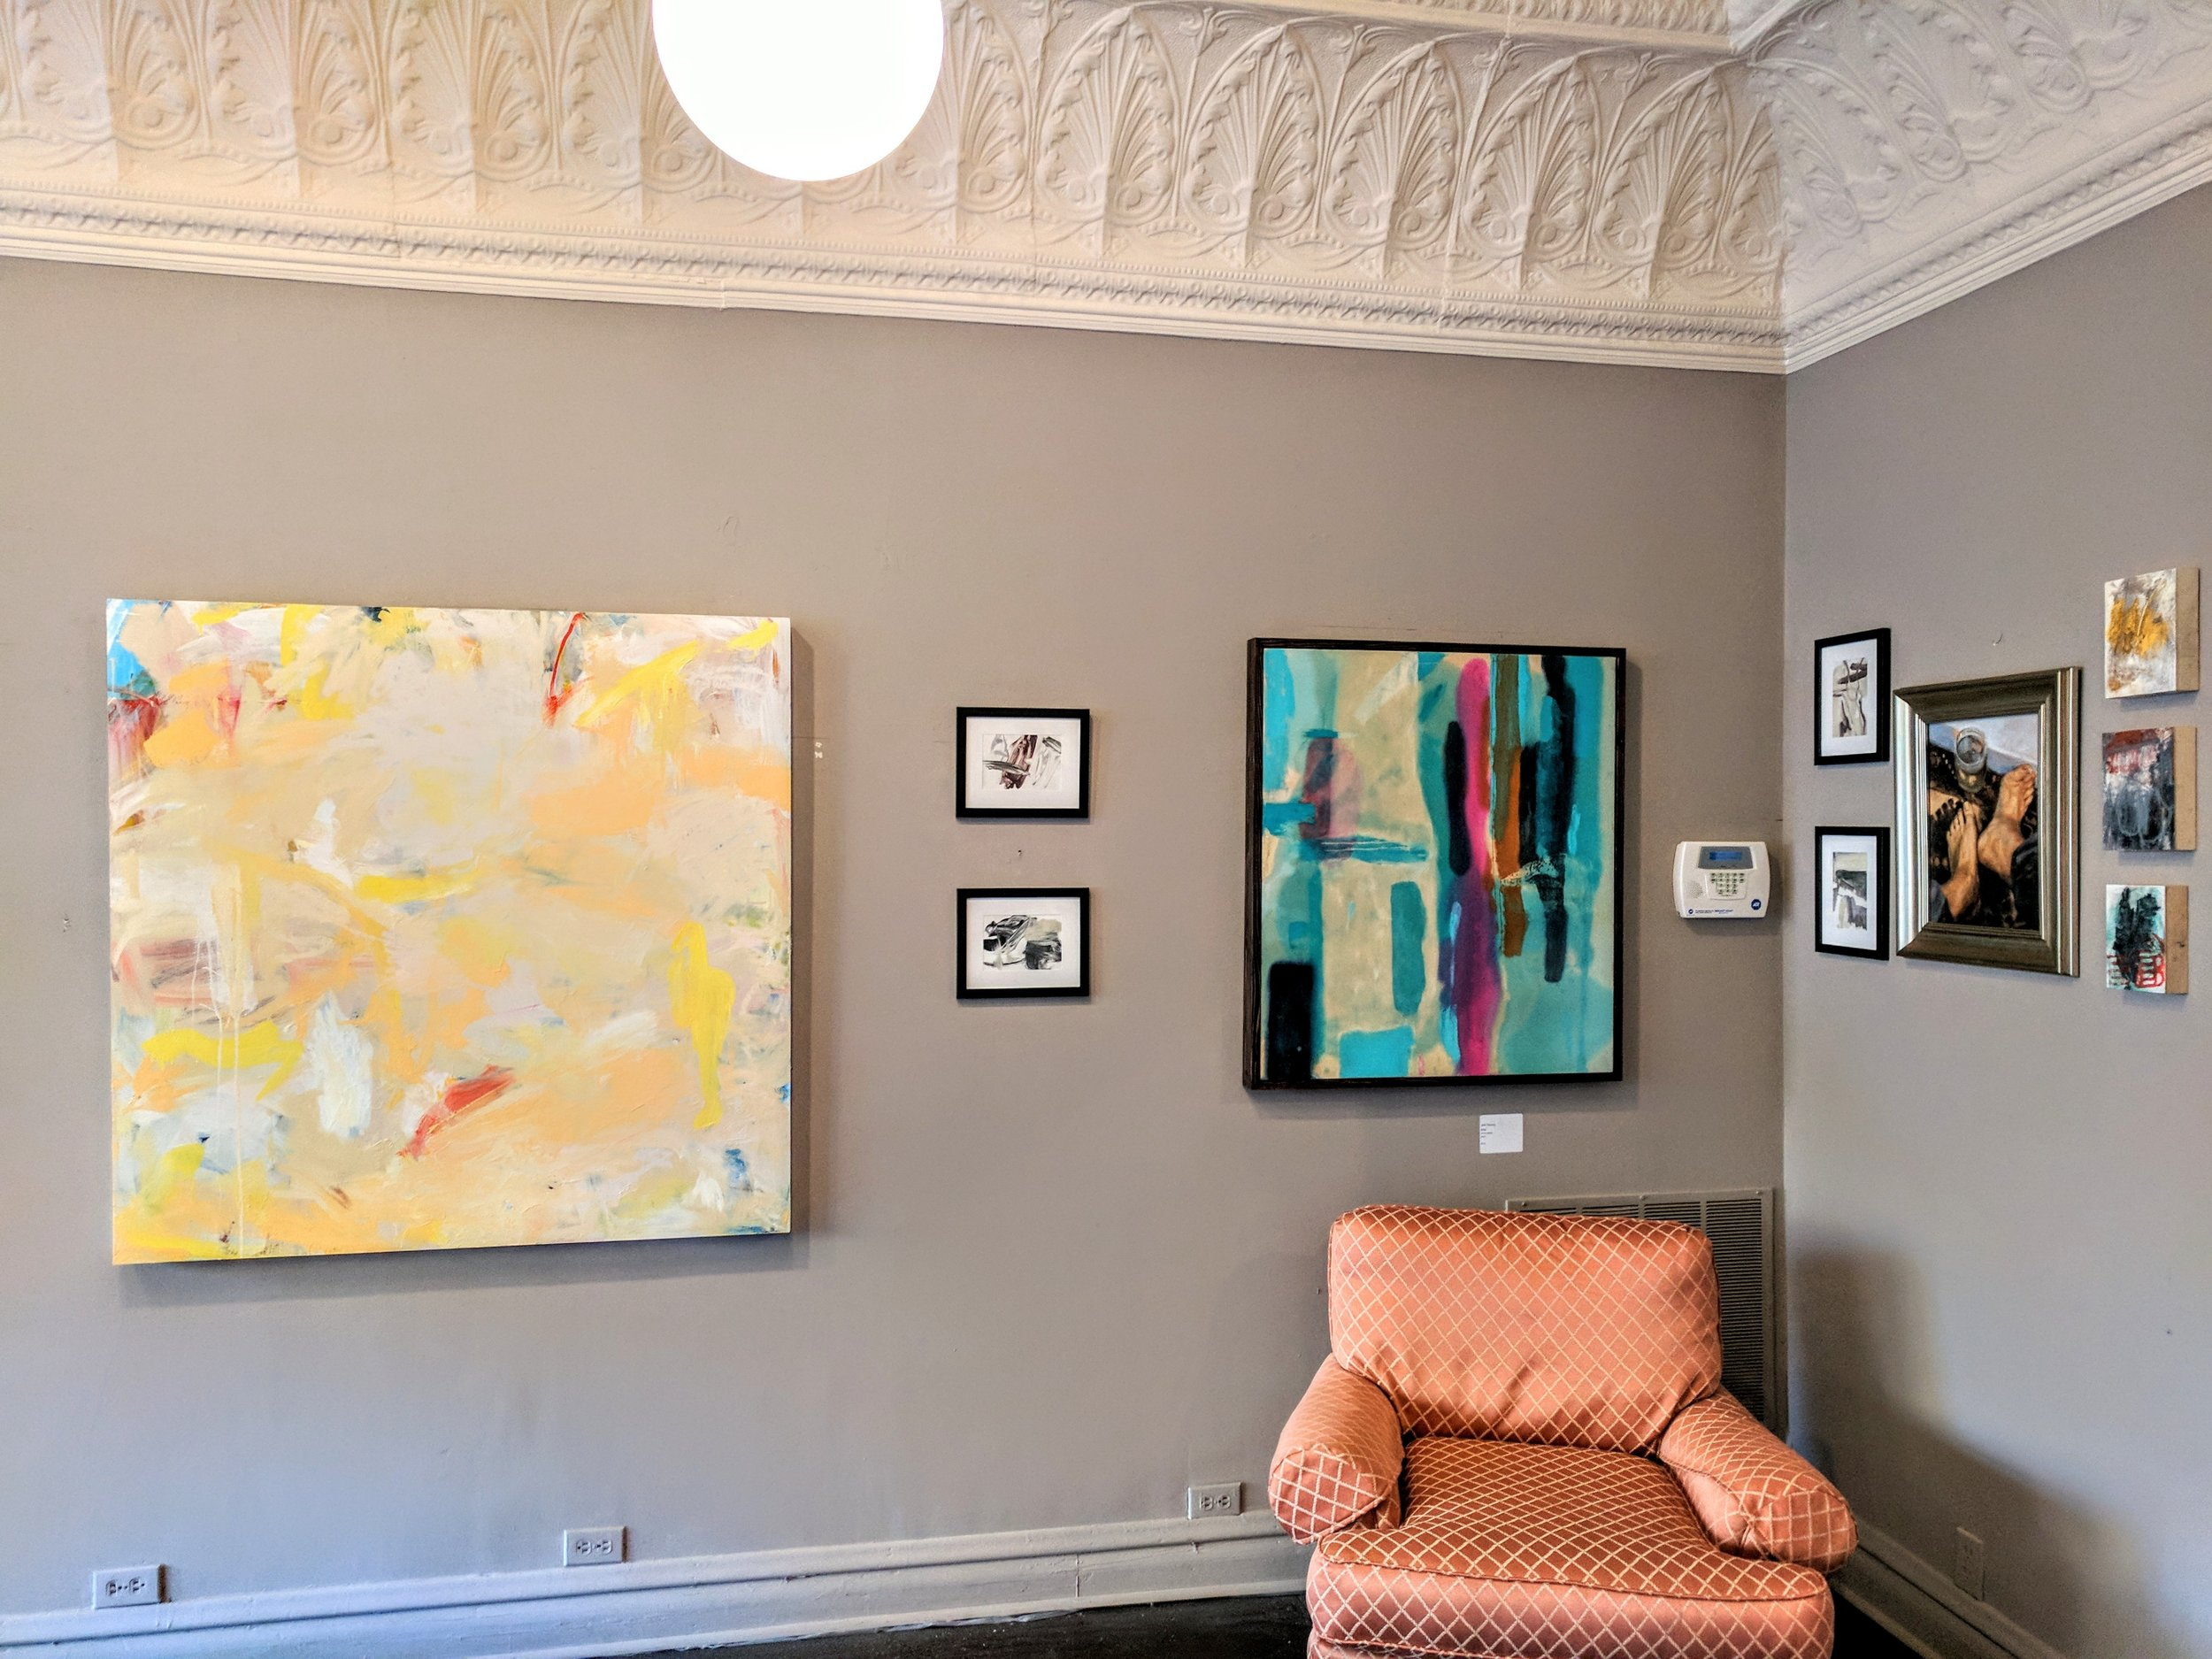 Installation shot of Modified Trajectory. Paintings in photo by Julie Tierney, Leah Hattendorf, Micheal Coon and Stasi Bobo-Ligon.